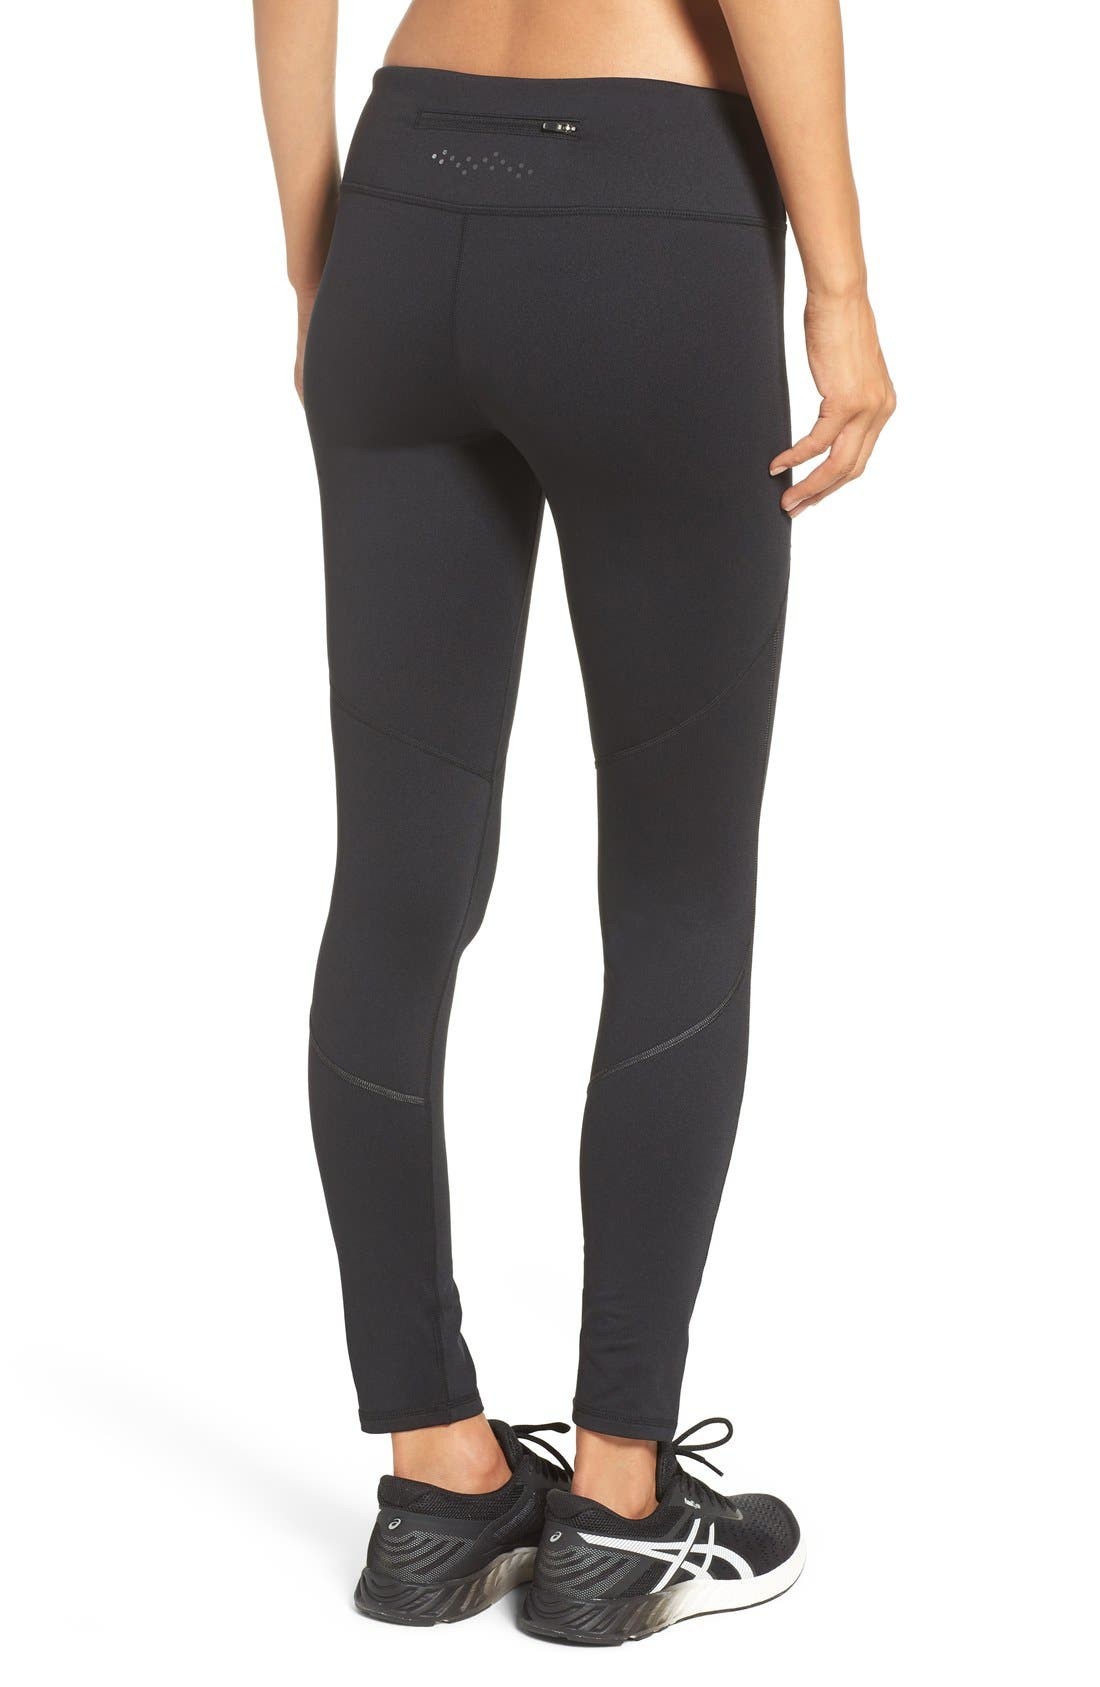 Heat It Up Running Tights,                         Main,                         color,